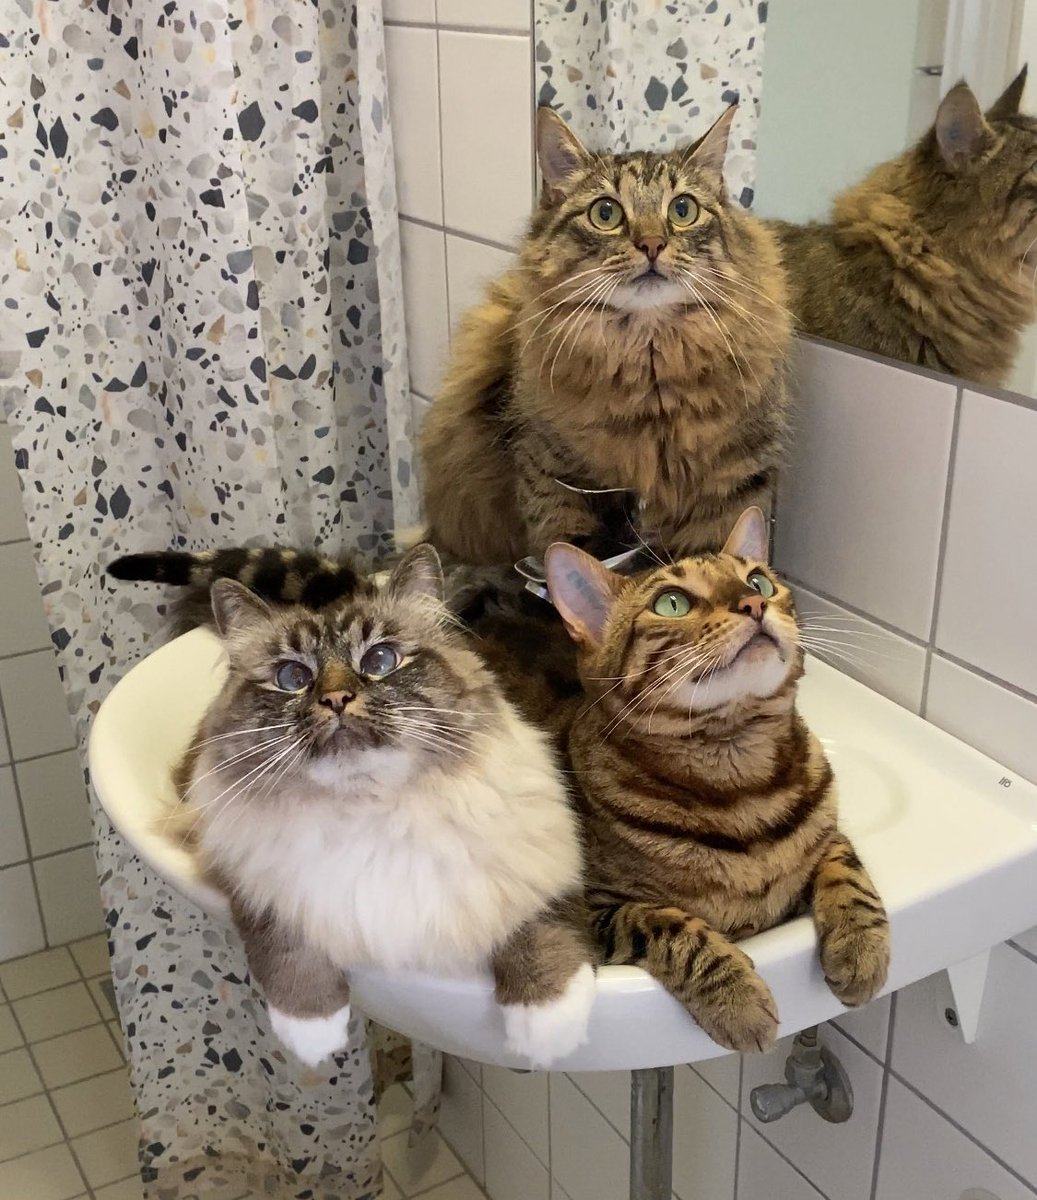 Always watching when you are on WC.  #cats #CatsOfTwitterpic.twitter.com/ydB2H9PHgj